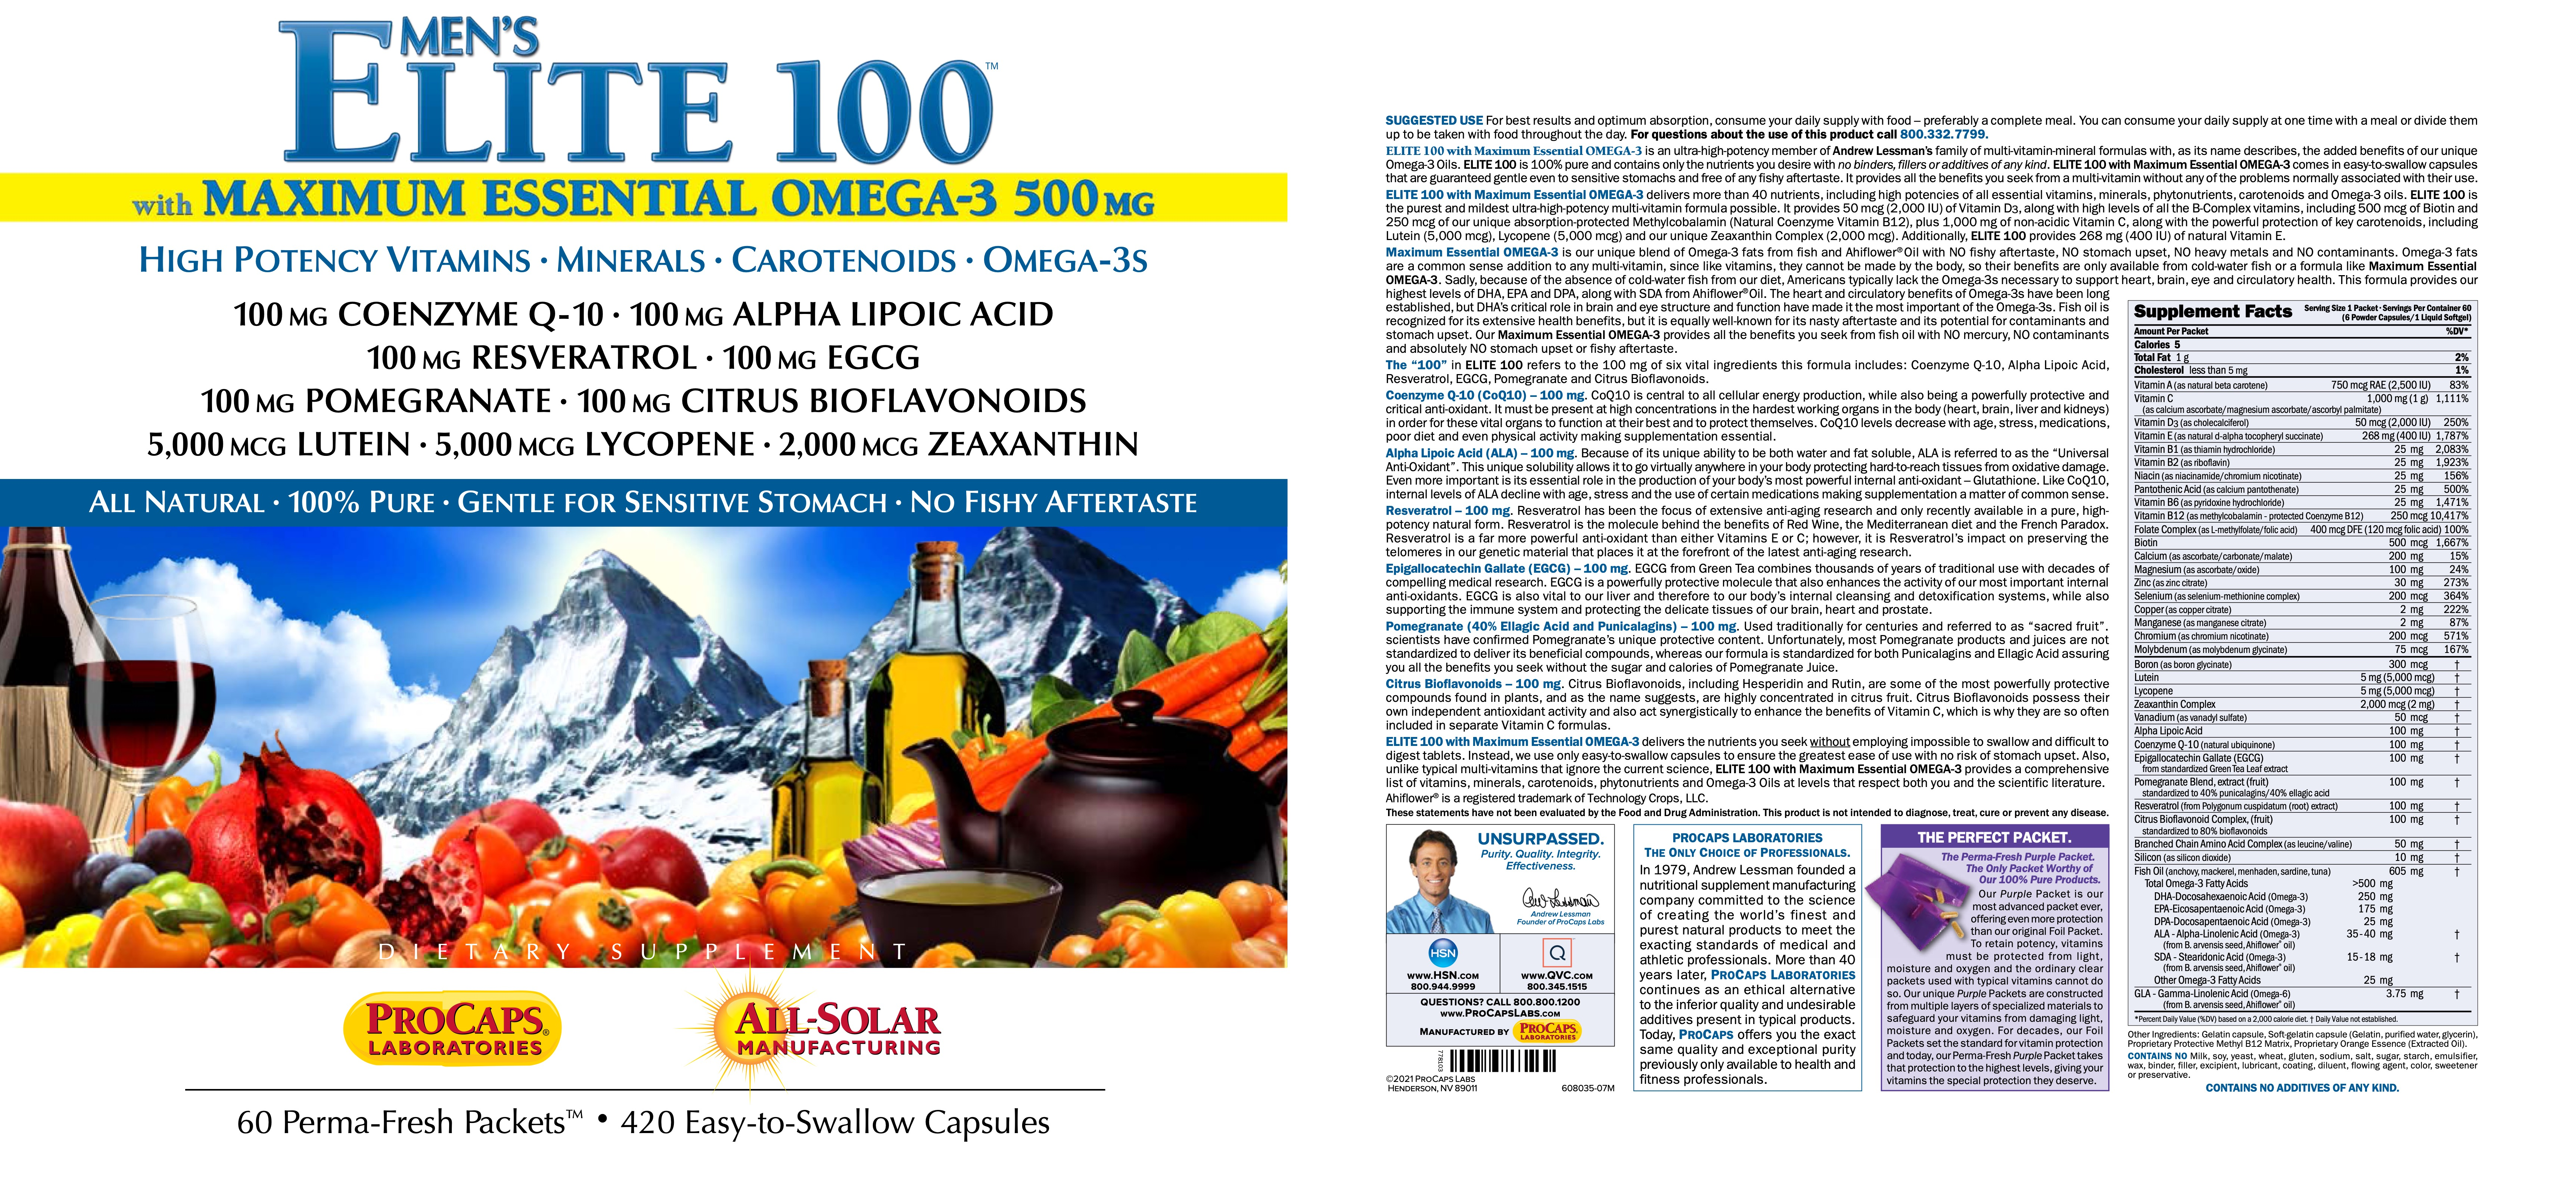 Men-s-Elite-100-with-Maximum-Essential-Omega-3-500-mg-Packets-Multivitamins